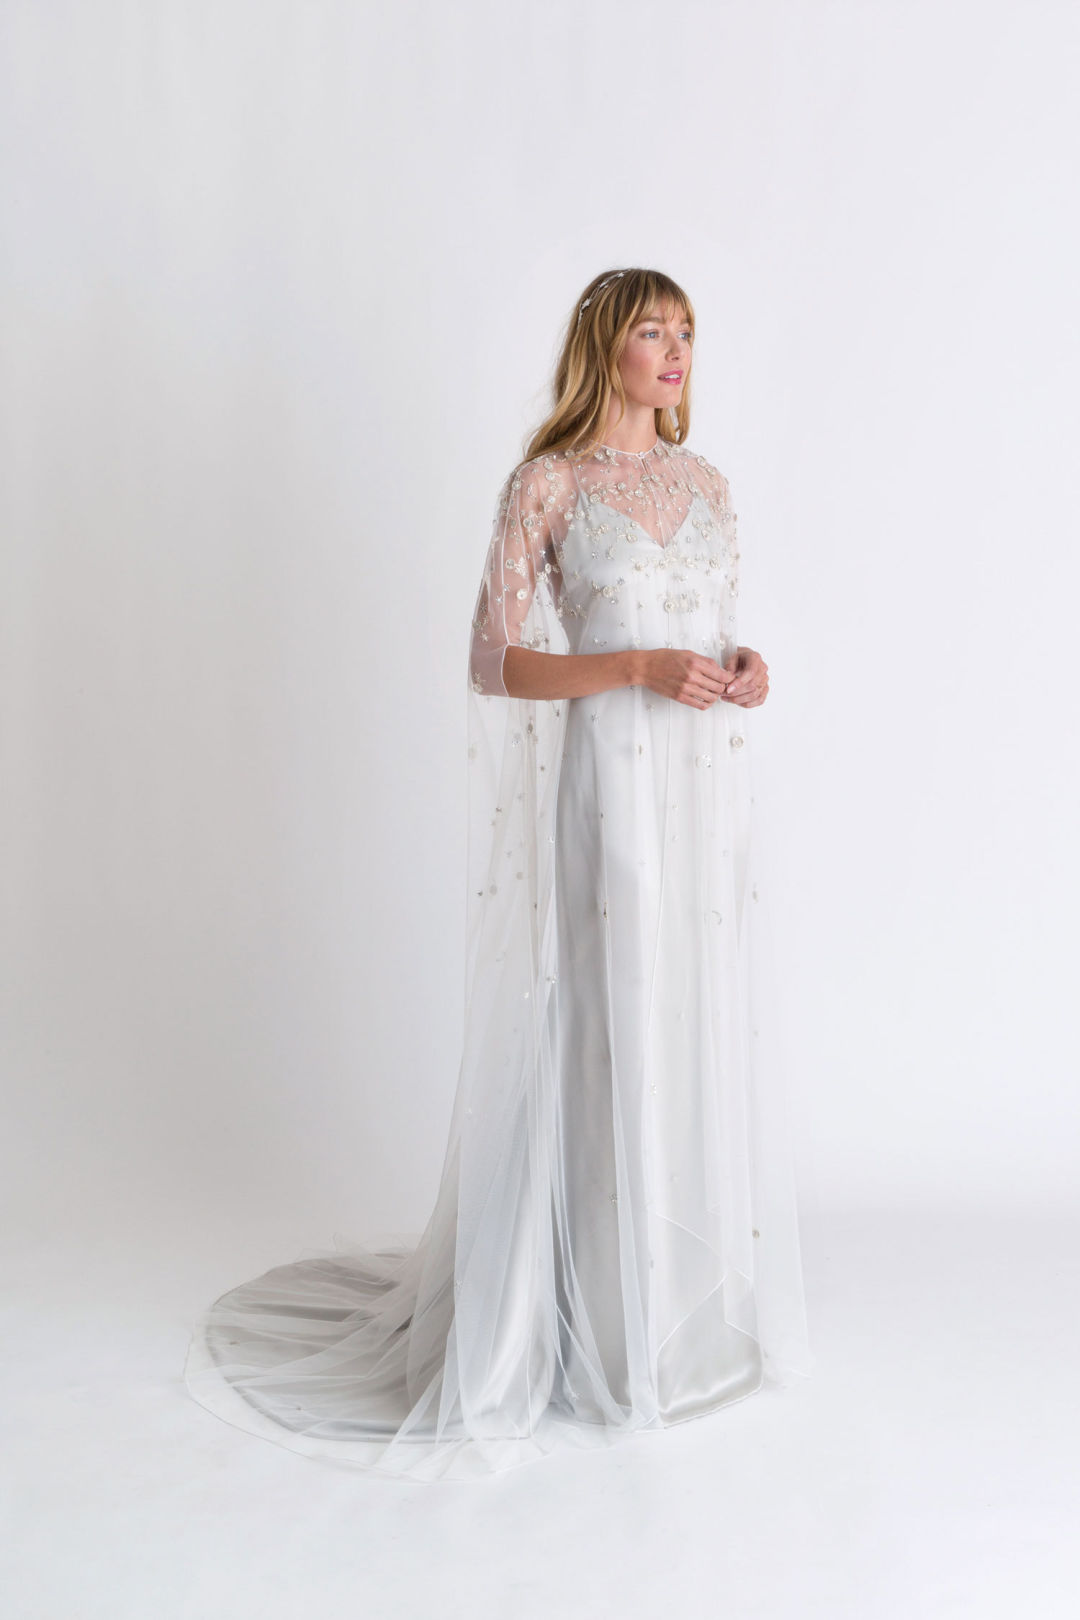 cd8d154fb2791 Runway Report: The Best New Wedding Gowns | Park City Magazine